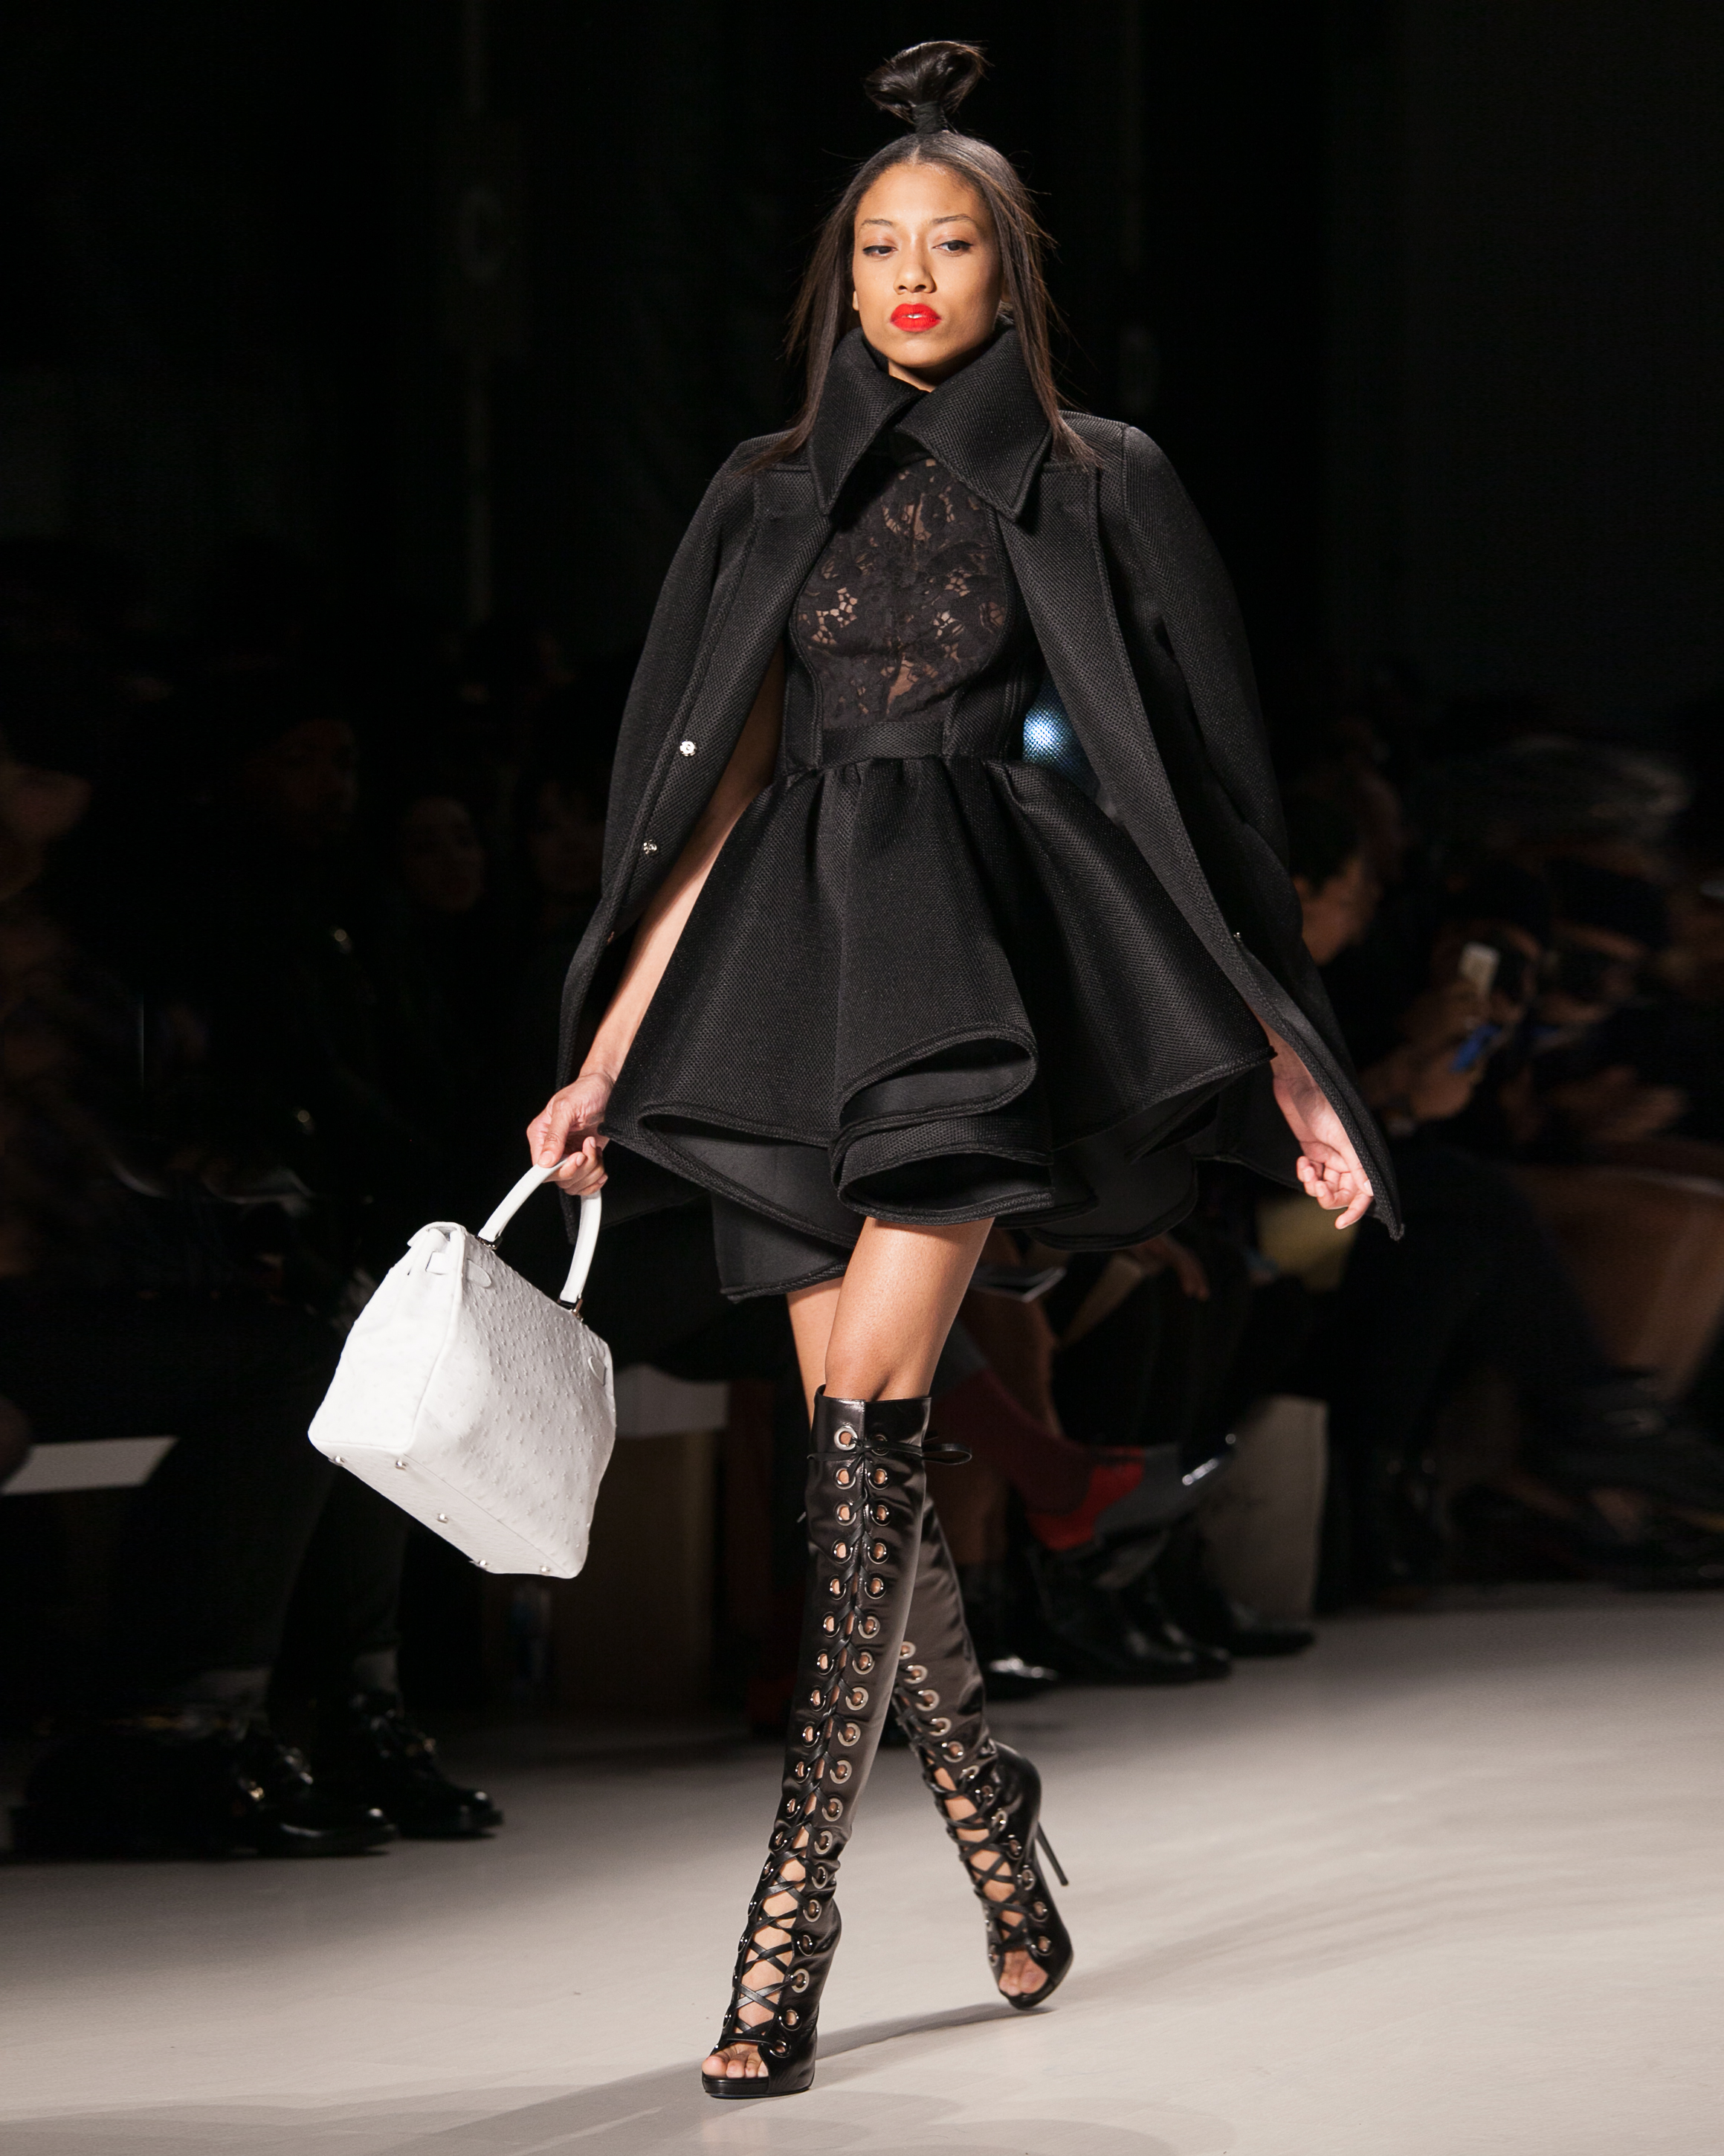 029-Michael-Costello-New-York-Fashion-Week-Fall-Winter-2015-Shana-Schnur-Photography-029.jpg